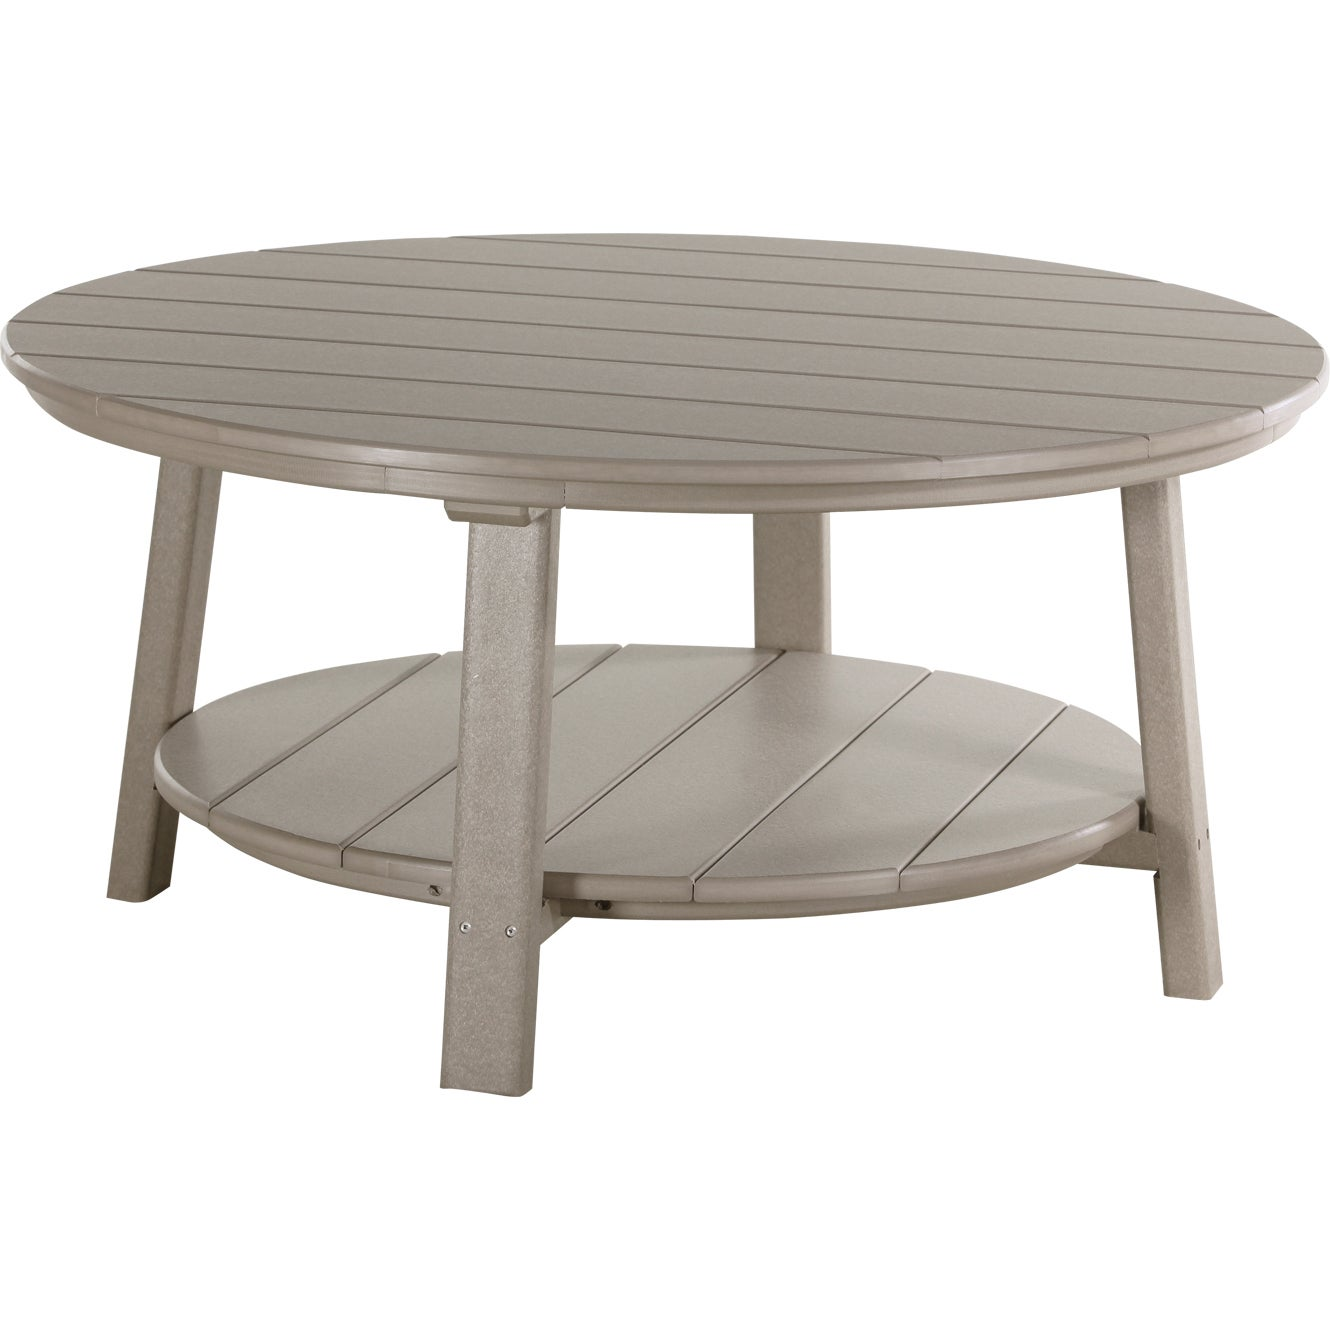 Shop Outdoor Poly Deluxe Round Conversation / Coffee Table - On Sale - Free  Shipping Today - Overstock.com - 13798409 - Shop Outdoor Poly Deluxe Round Conversation / Coffee Table - On Sale